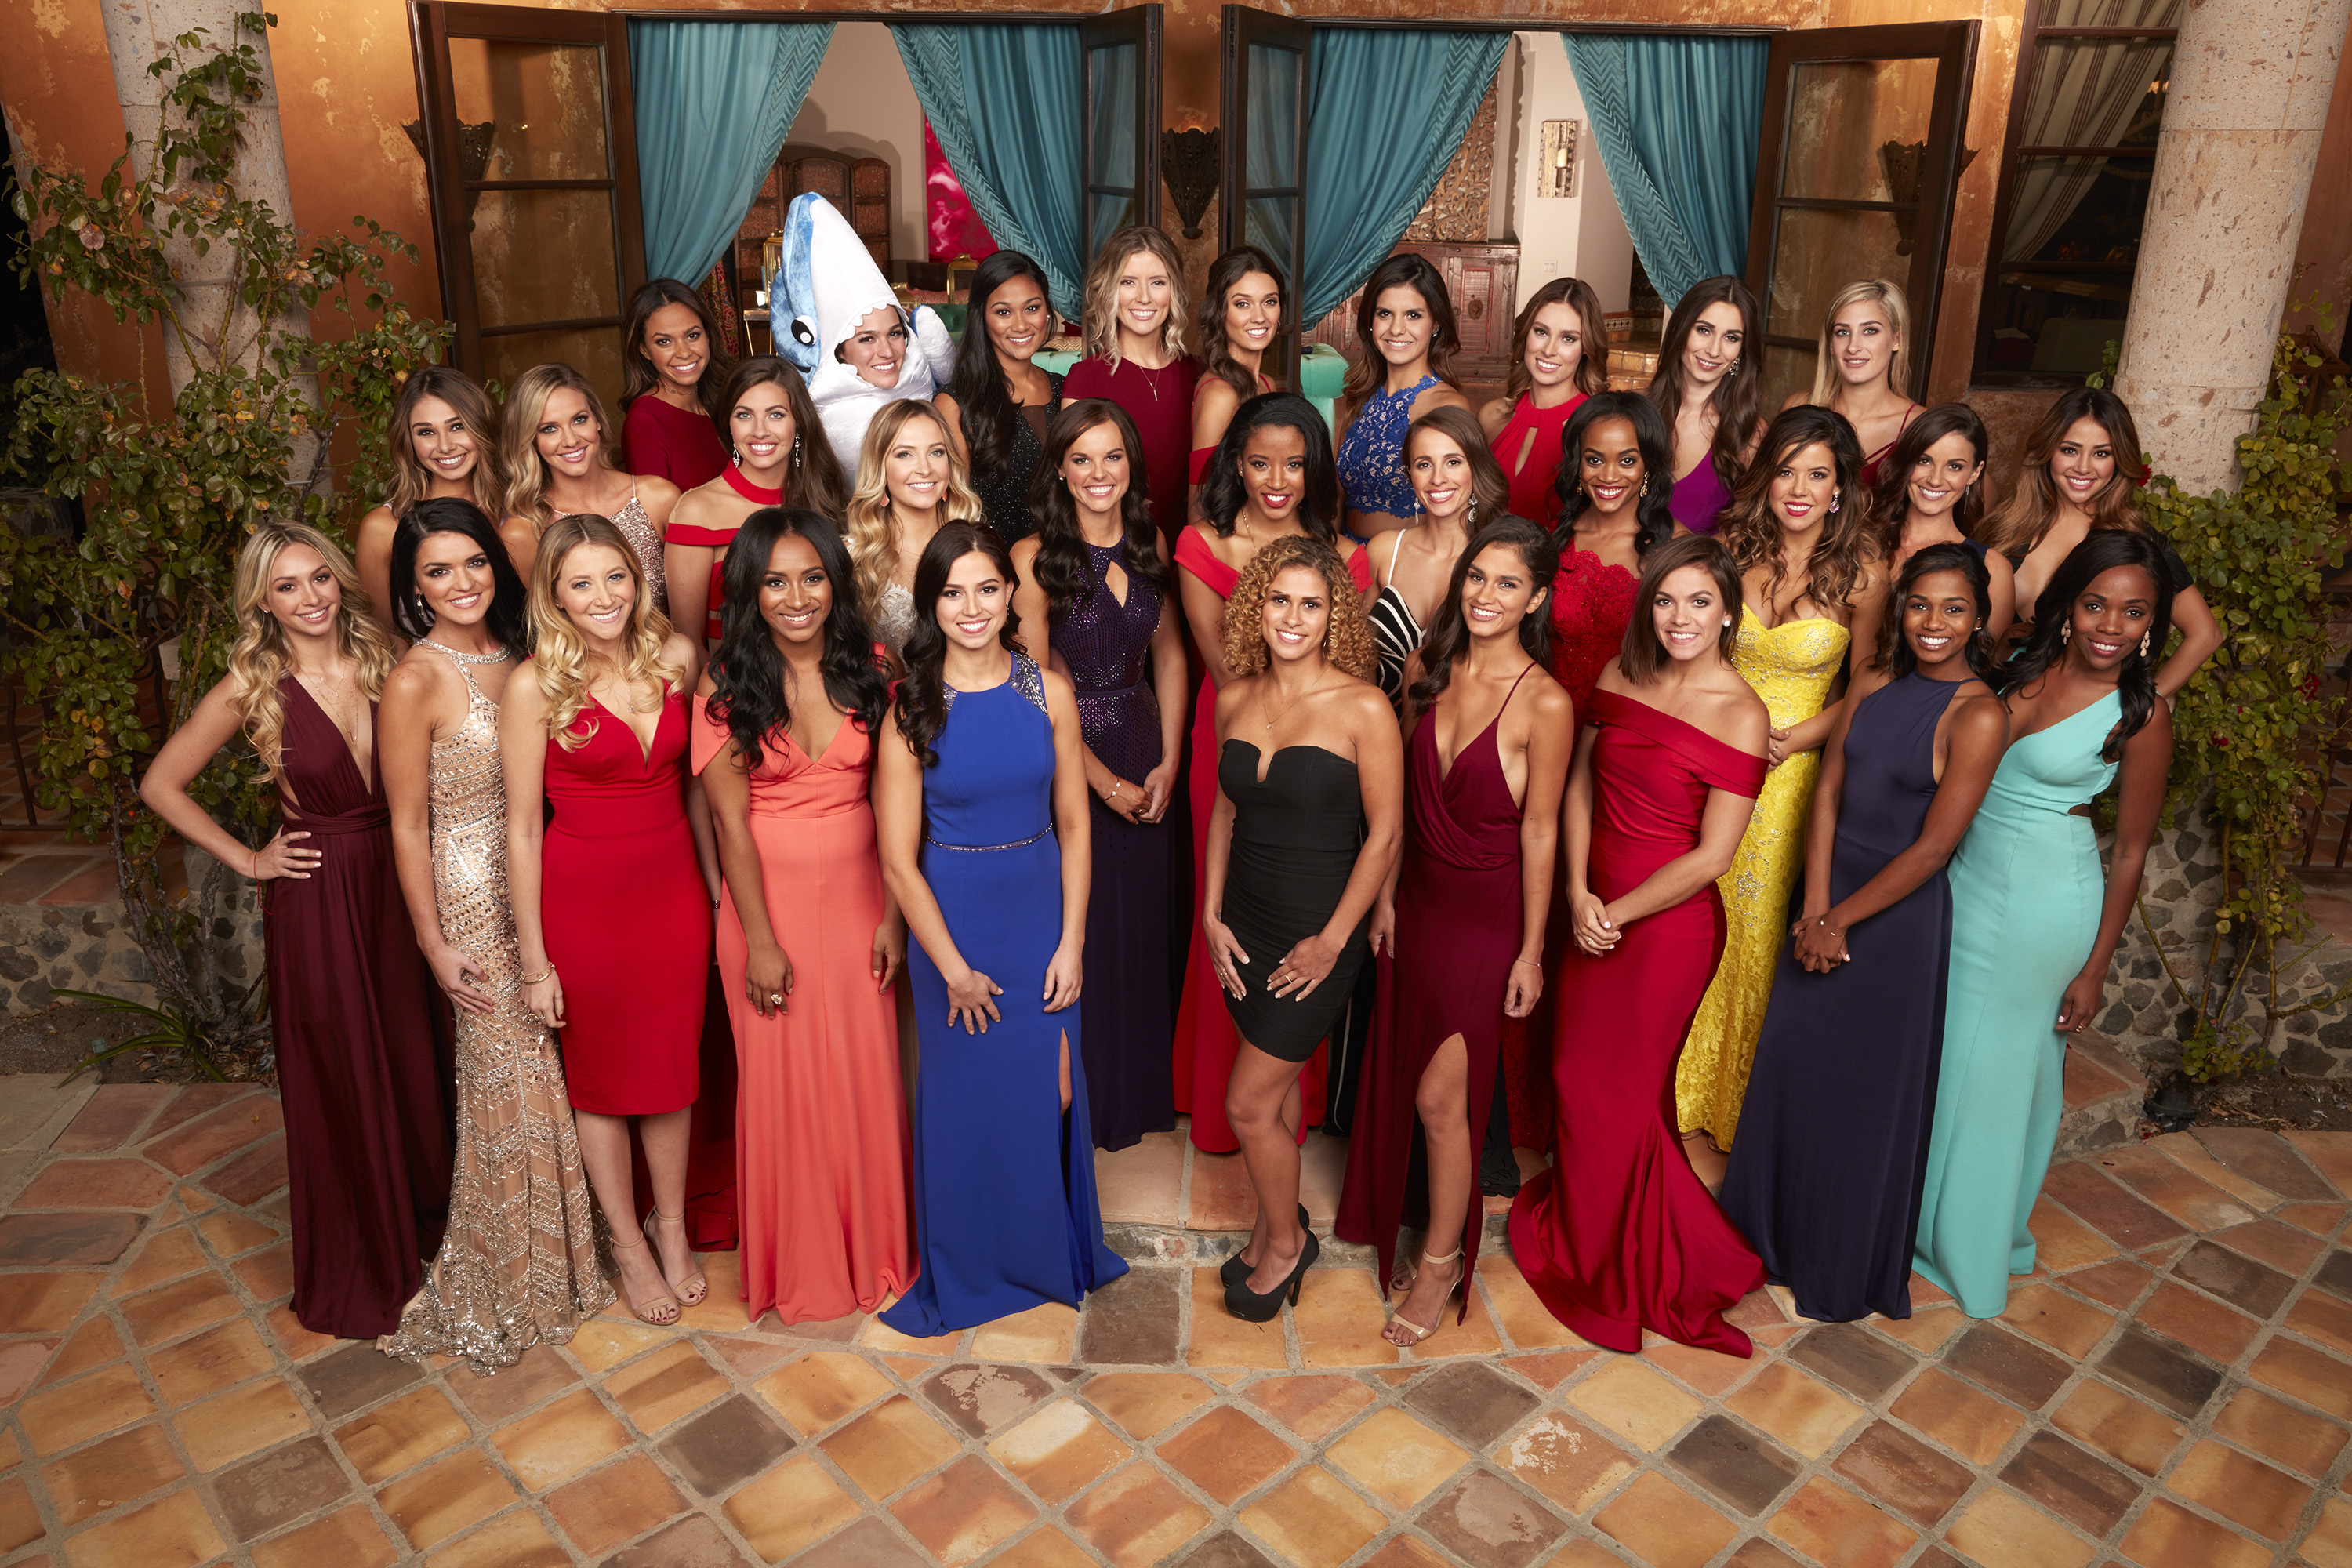 """The Bachelor"" is getting a ~spin-off~ show...on Snapchat"